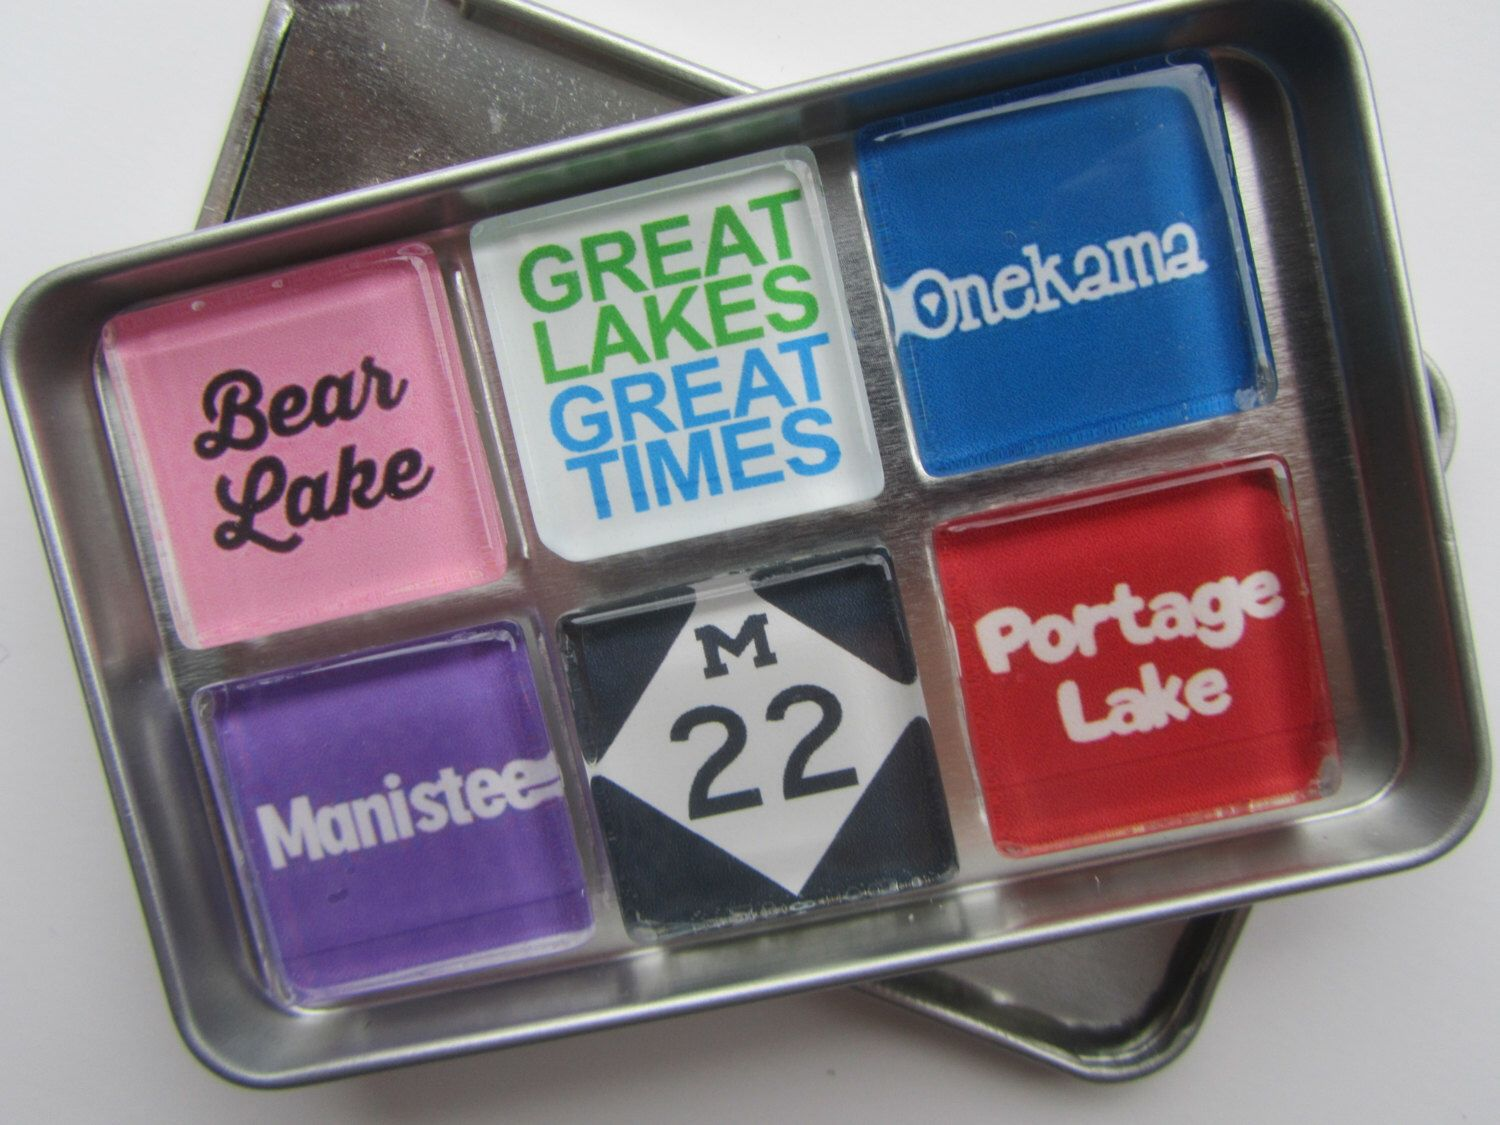 Manistee Frankfort Portage Lake Bear Lake Crystal Lake Beulah Onekama Michigan Up North Michigan Magnets No Manistee Glass Magnets Super Strong Magnets